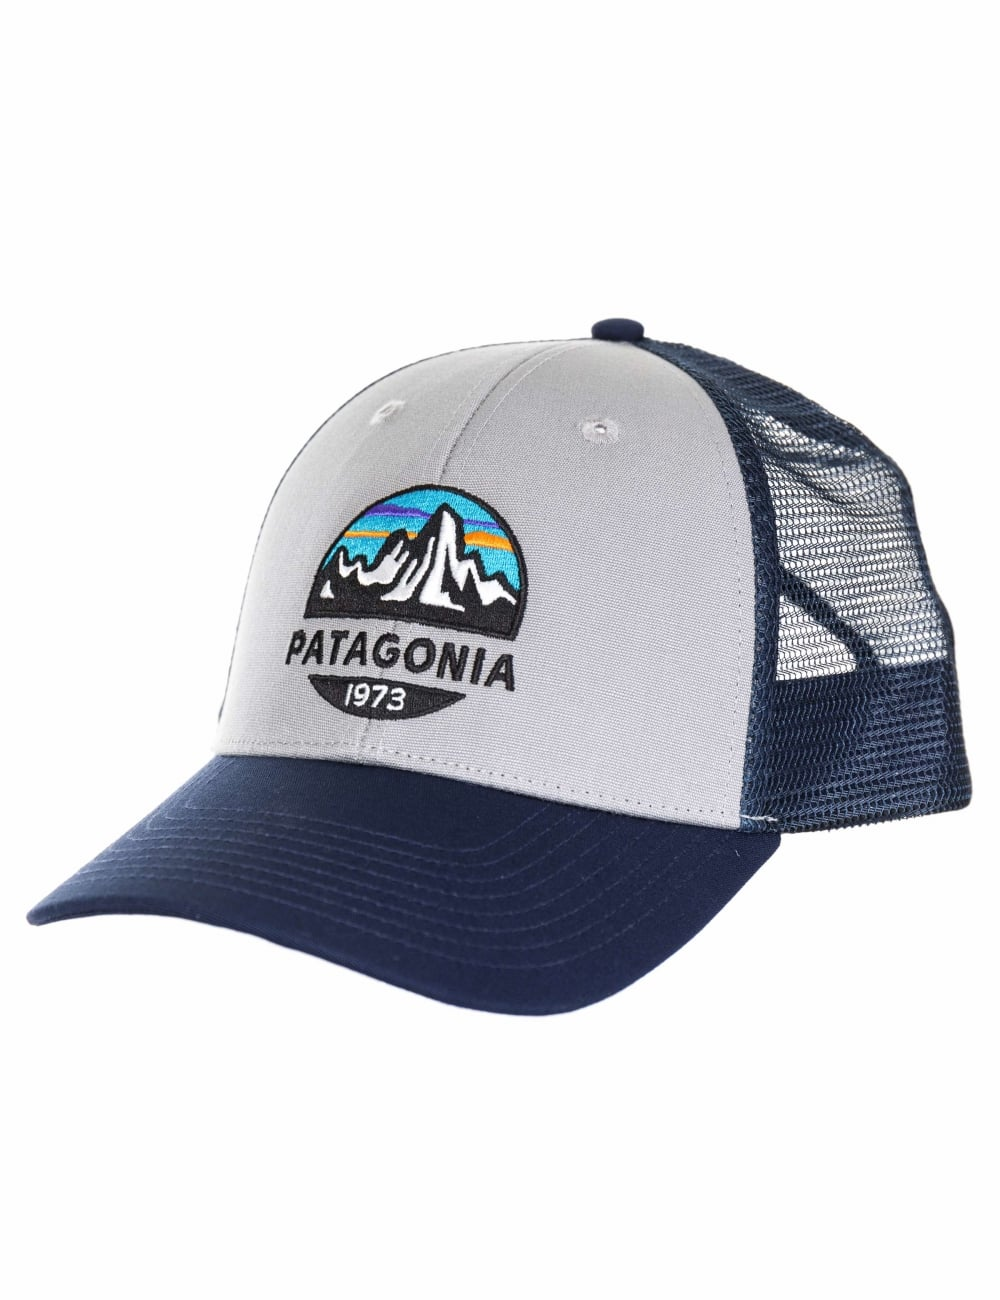 Patagonia Fitz Roy Scope LoPro Trucker Hat - Drifter Grey ... bcd39e42176